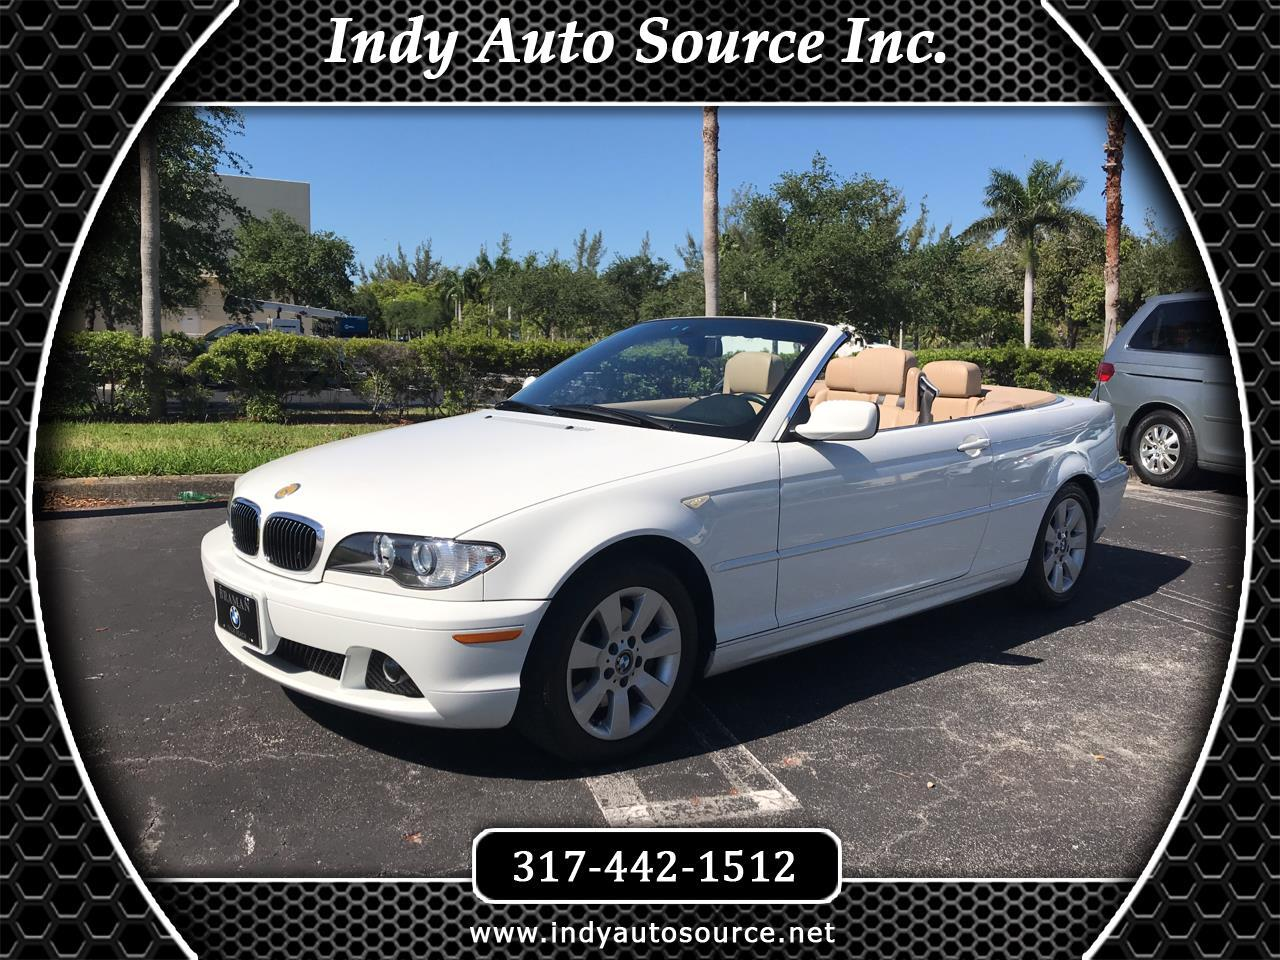 2005 BMW 3-Series 325Ci convertible